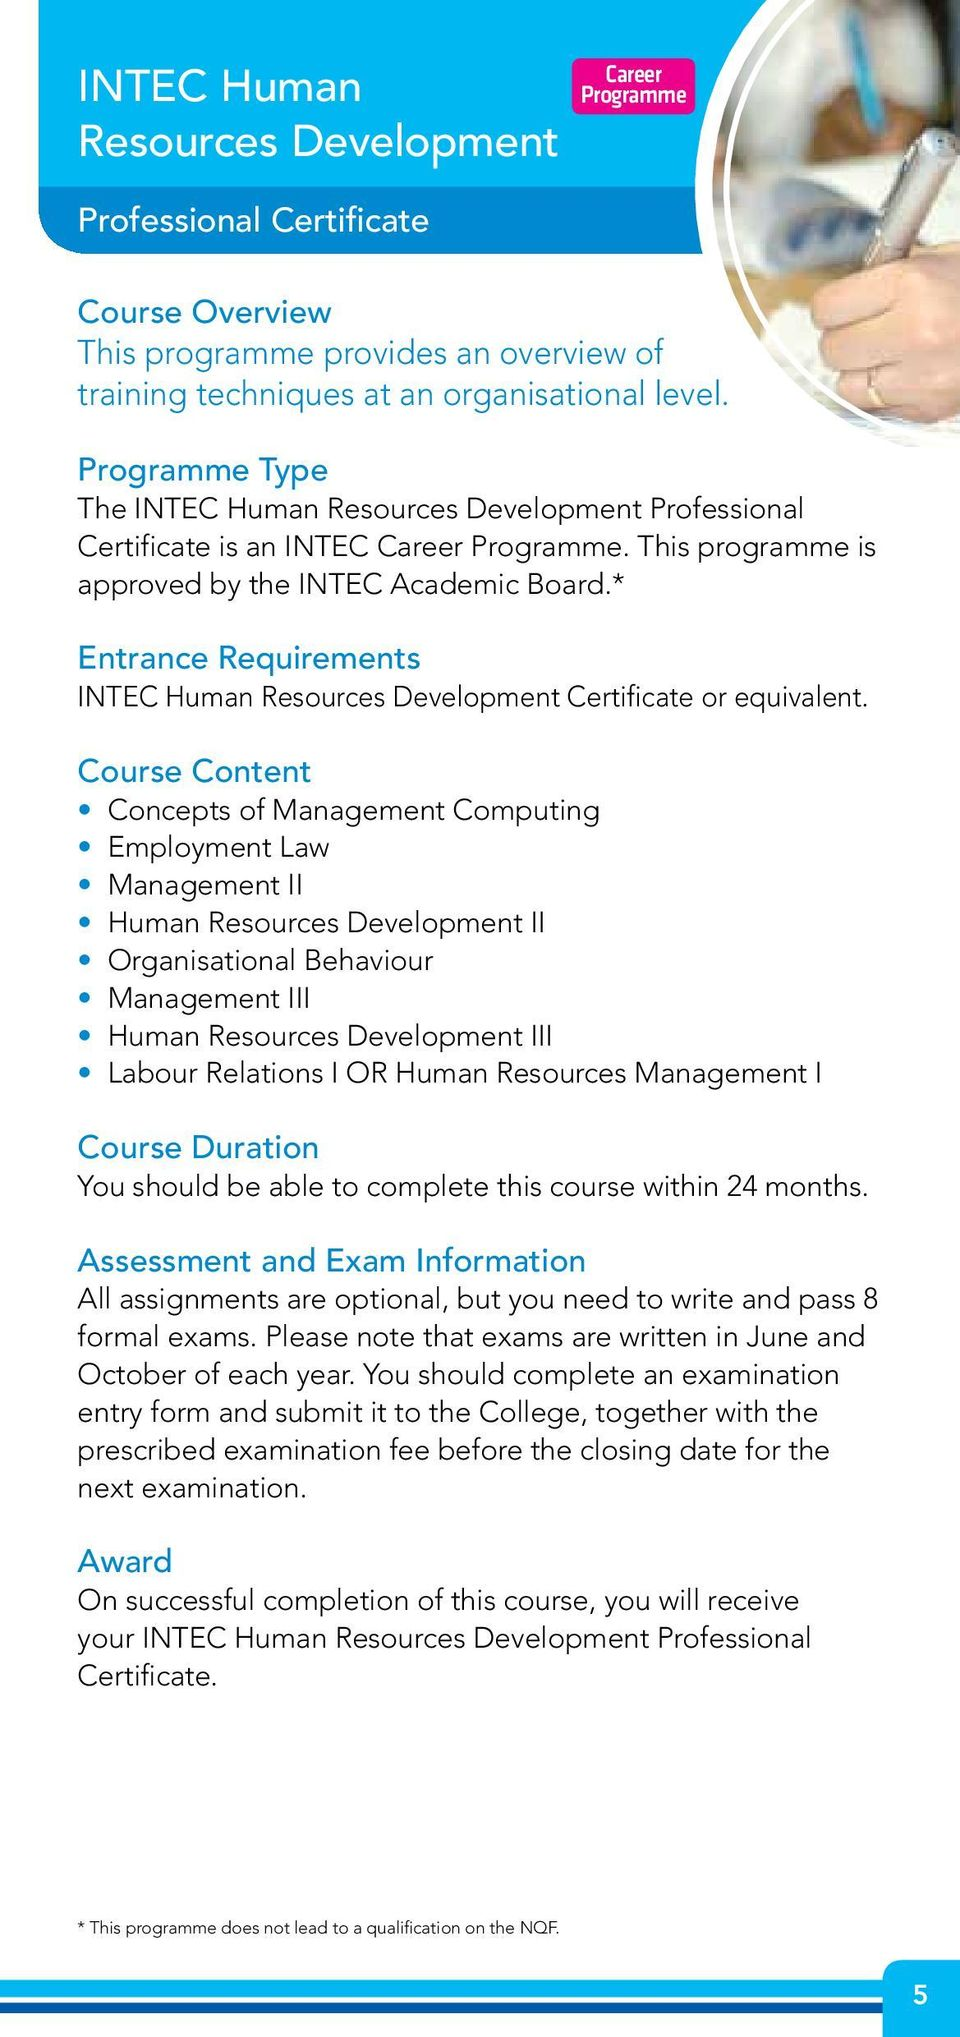 * Entrance Requirements INTEC Human Resources Development Certificate or equivalent.